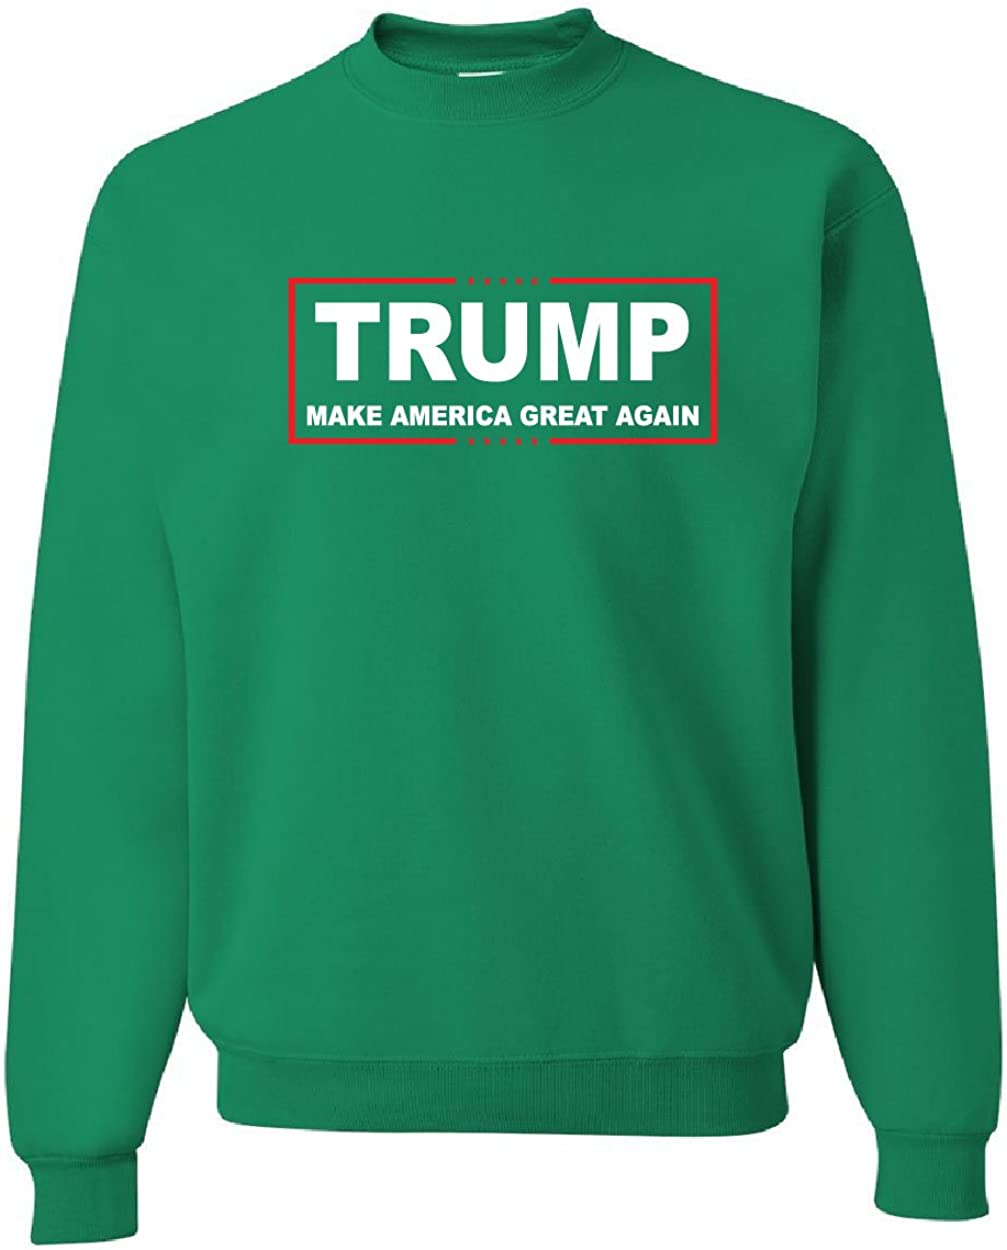 Tee Hunt Trump Crew Neck Sweatshirt Make America Great Again